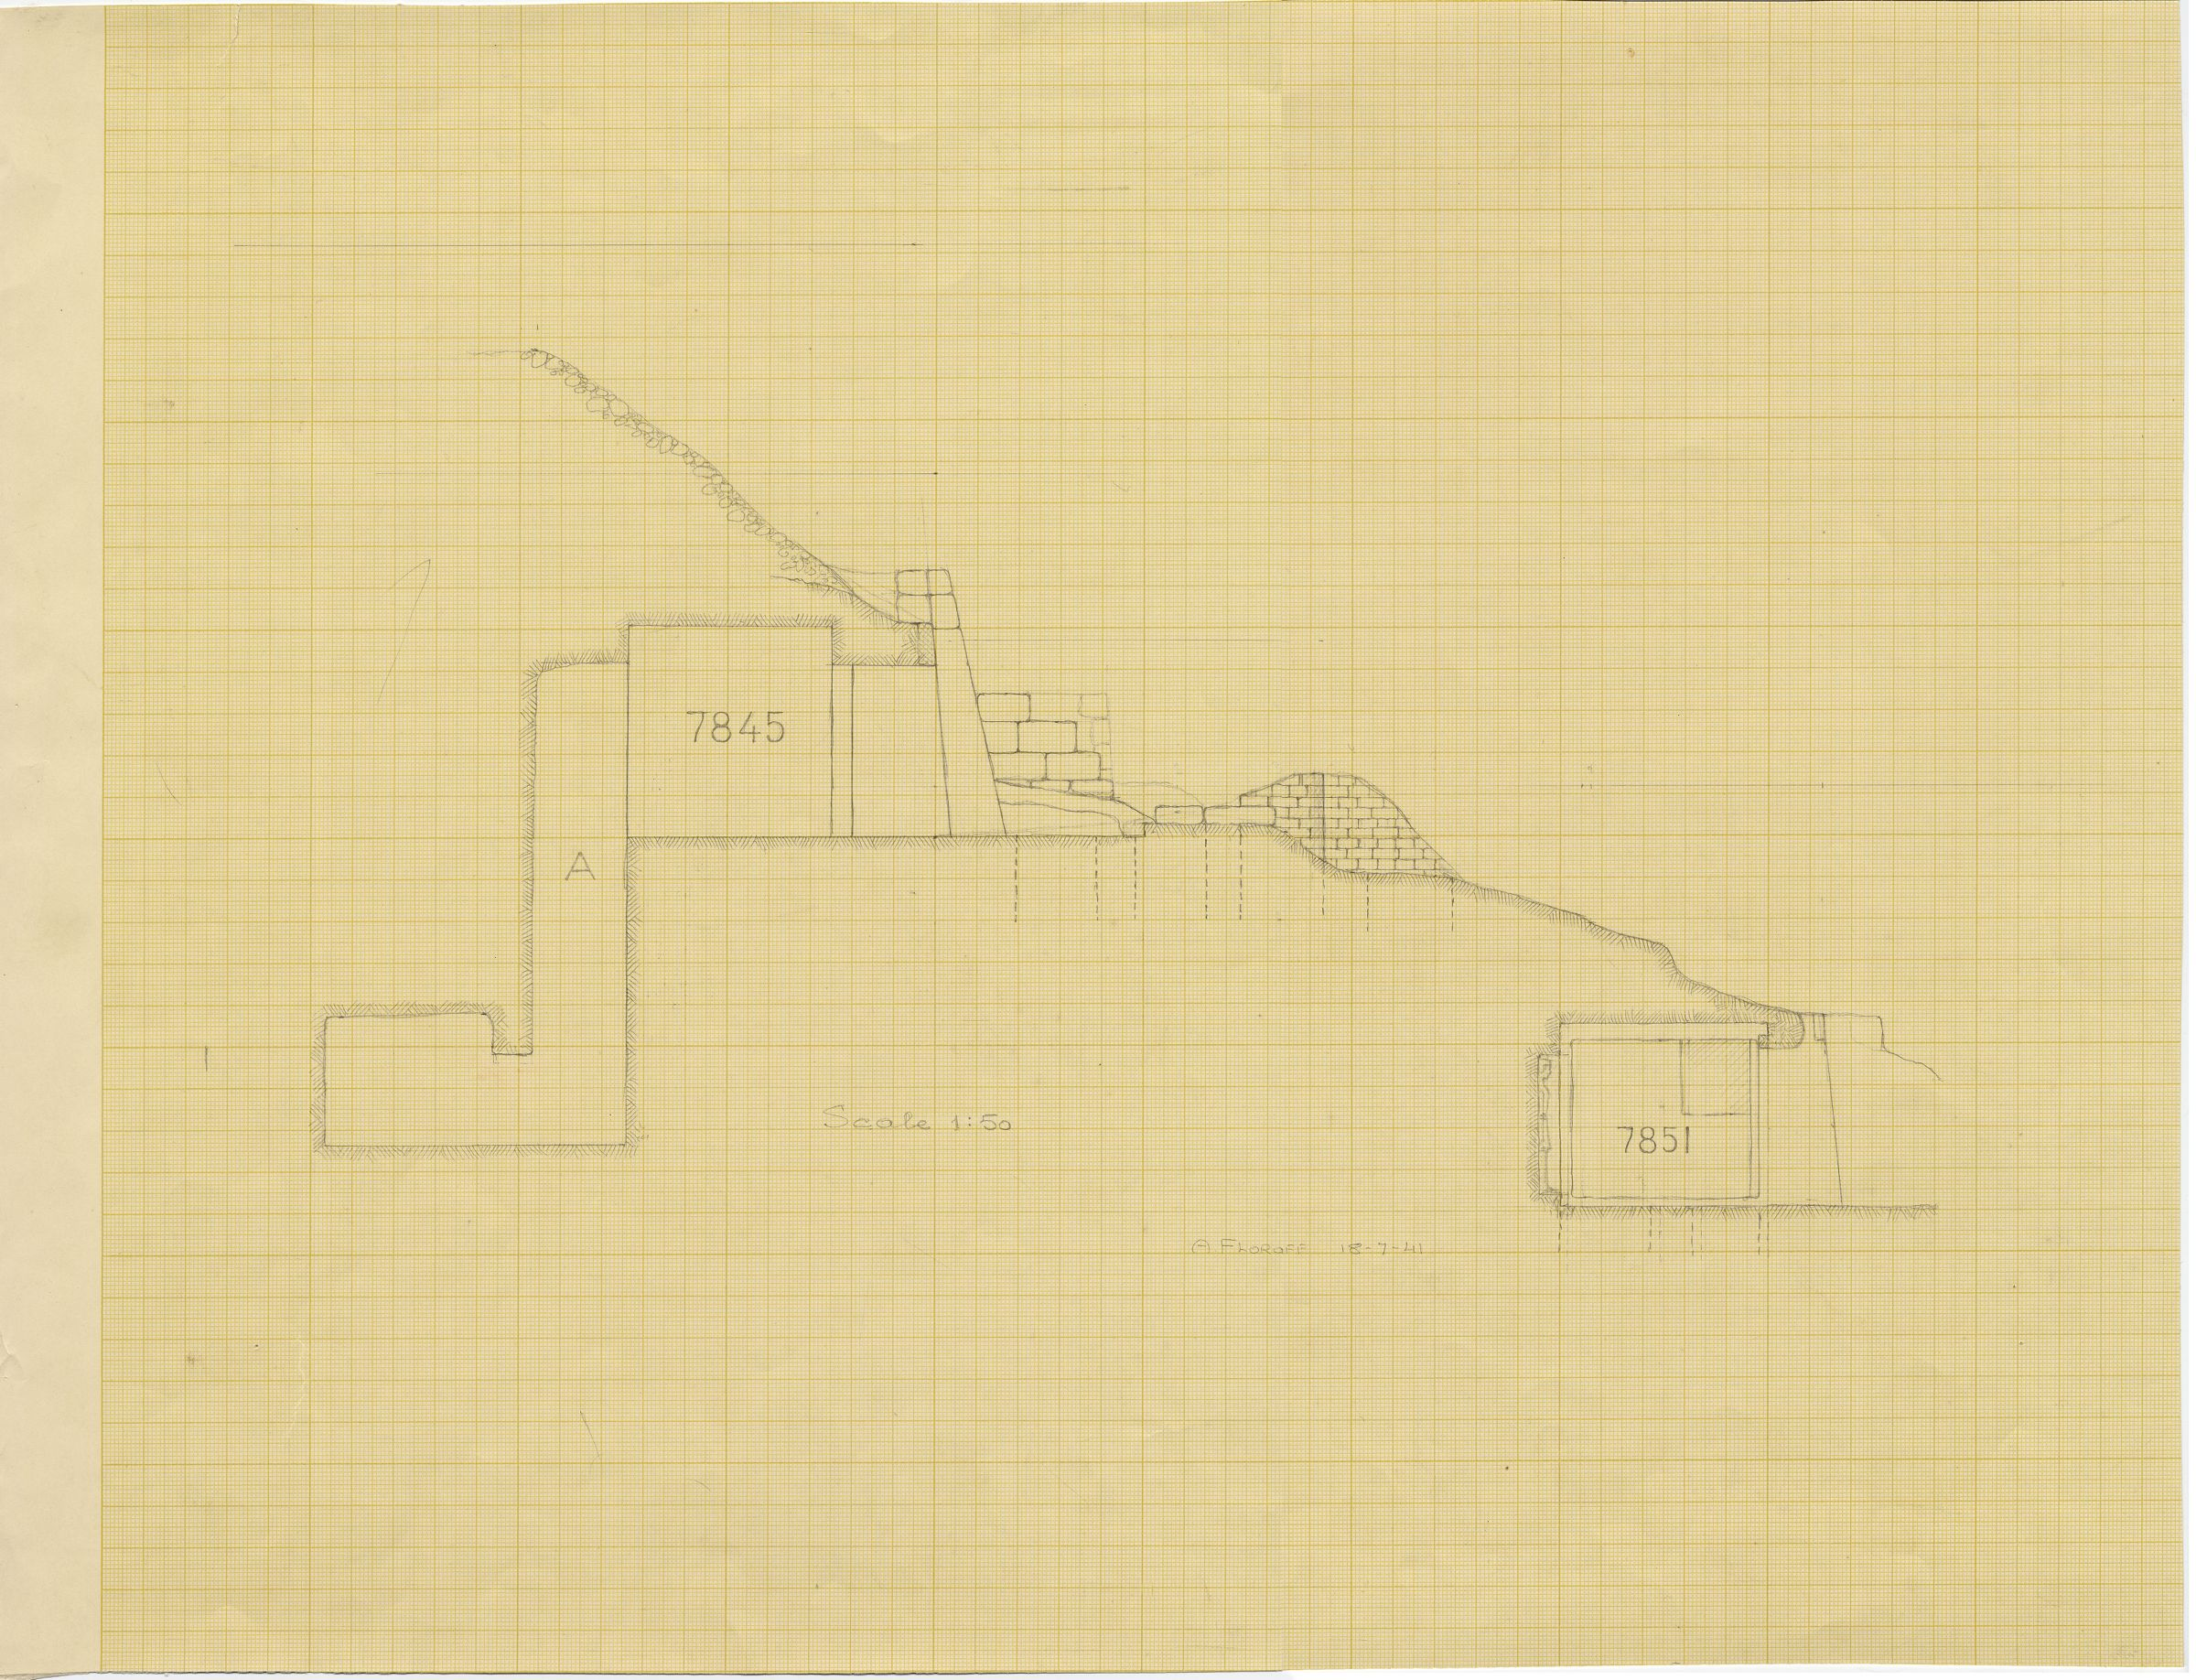 Maps and plans: Sections of G 7845 and G 7851